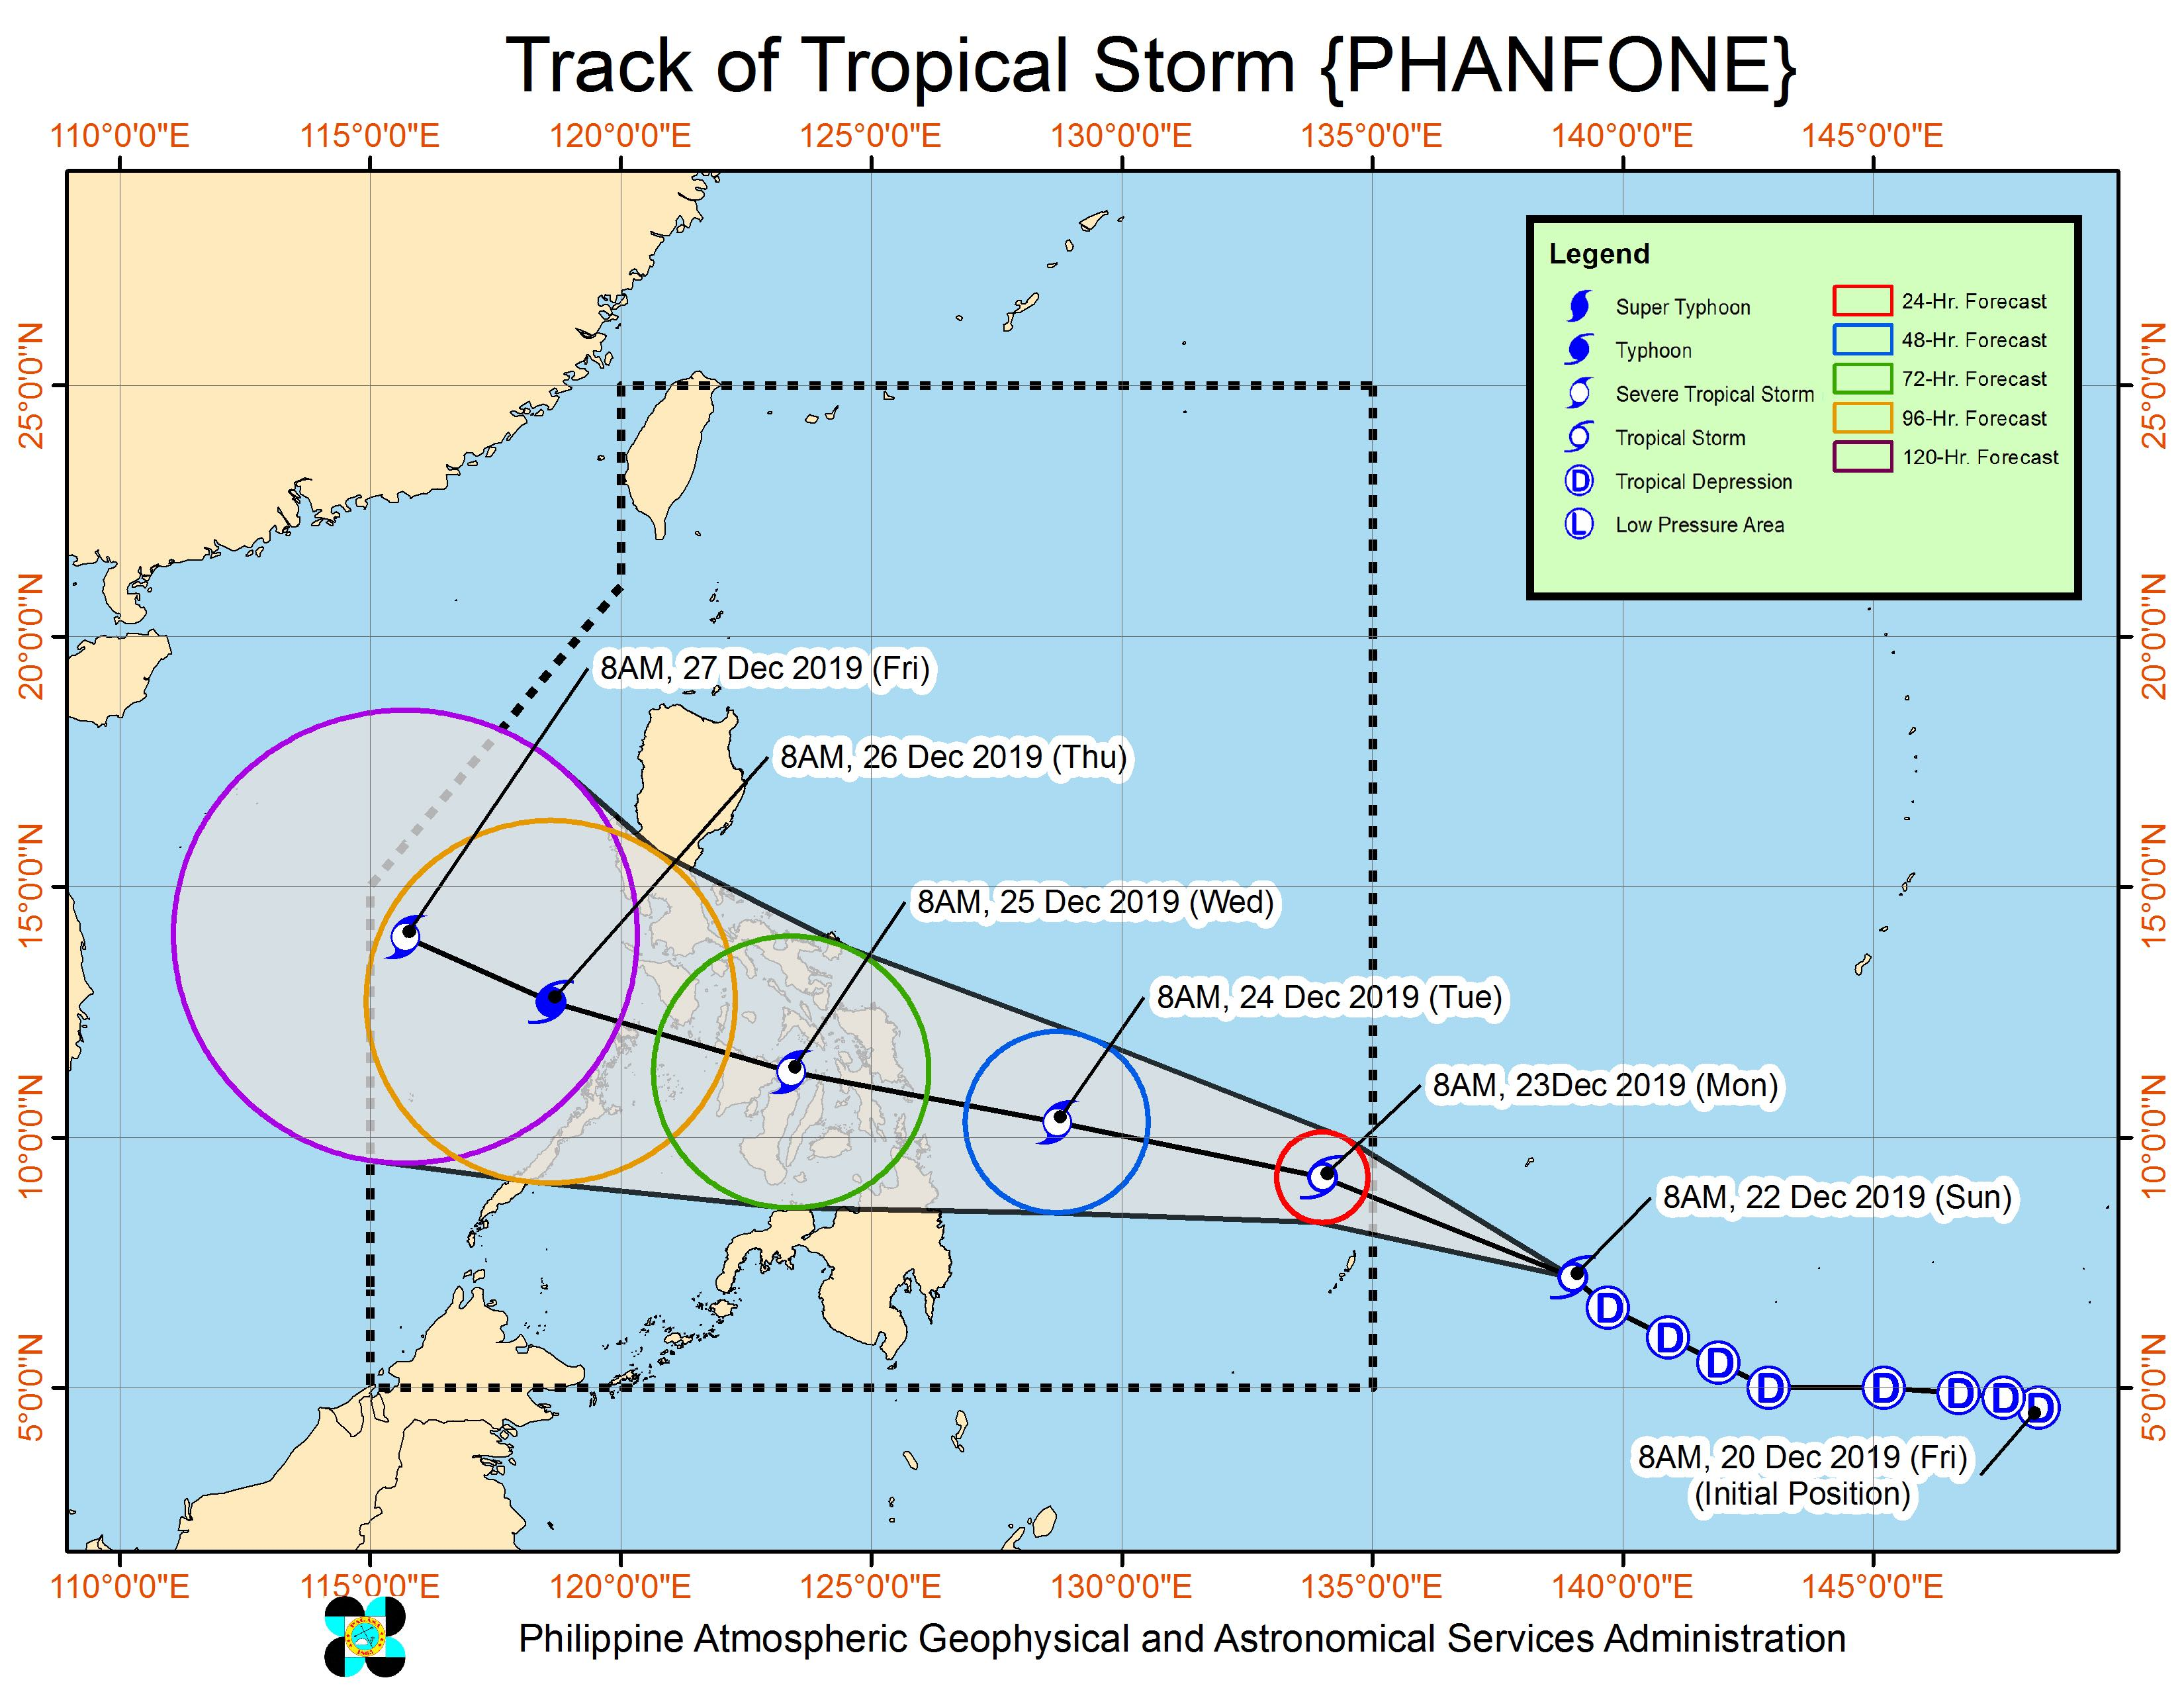 Forecast track of Tropical Storm Phanfone, which is still outside the Philippine Area of Responsibility, as of December 22, 2019, 11 am. Image from PAGASA